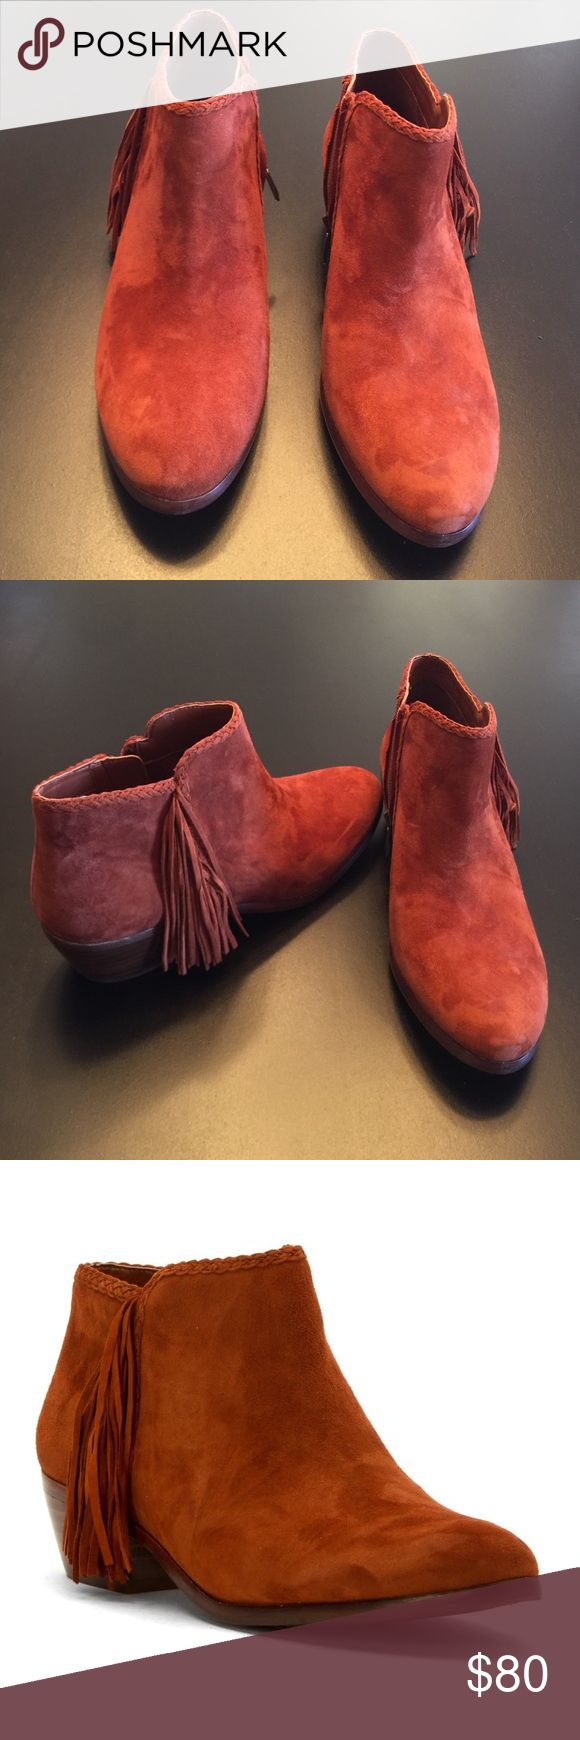 Sam Edelman Suede Boothe, NEW Sam Edelman Cinnamon color Kid Suede Leather Bootie that zips. New with box Sam Edelman Shoes Ankle Boots & Booties